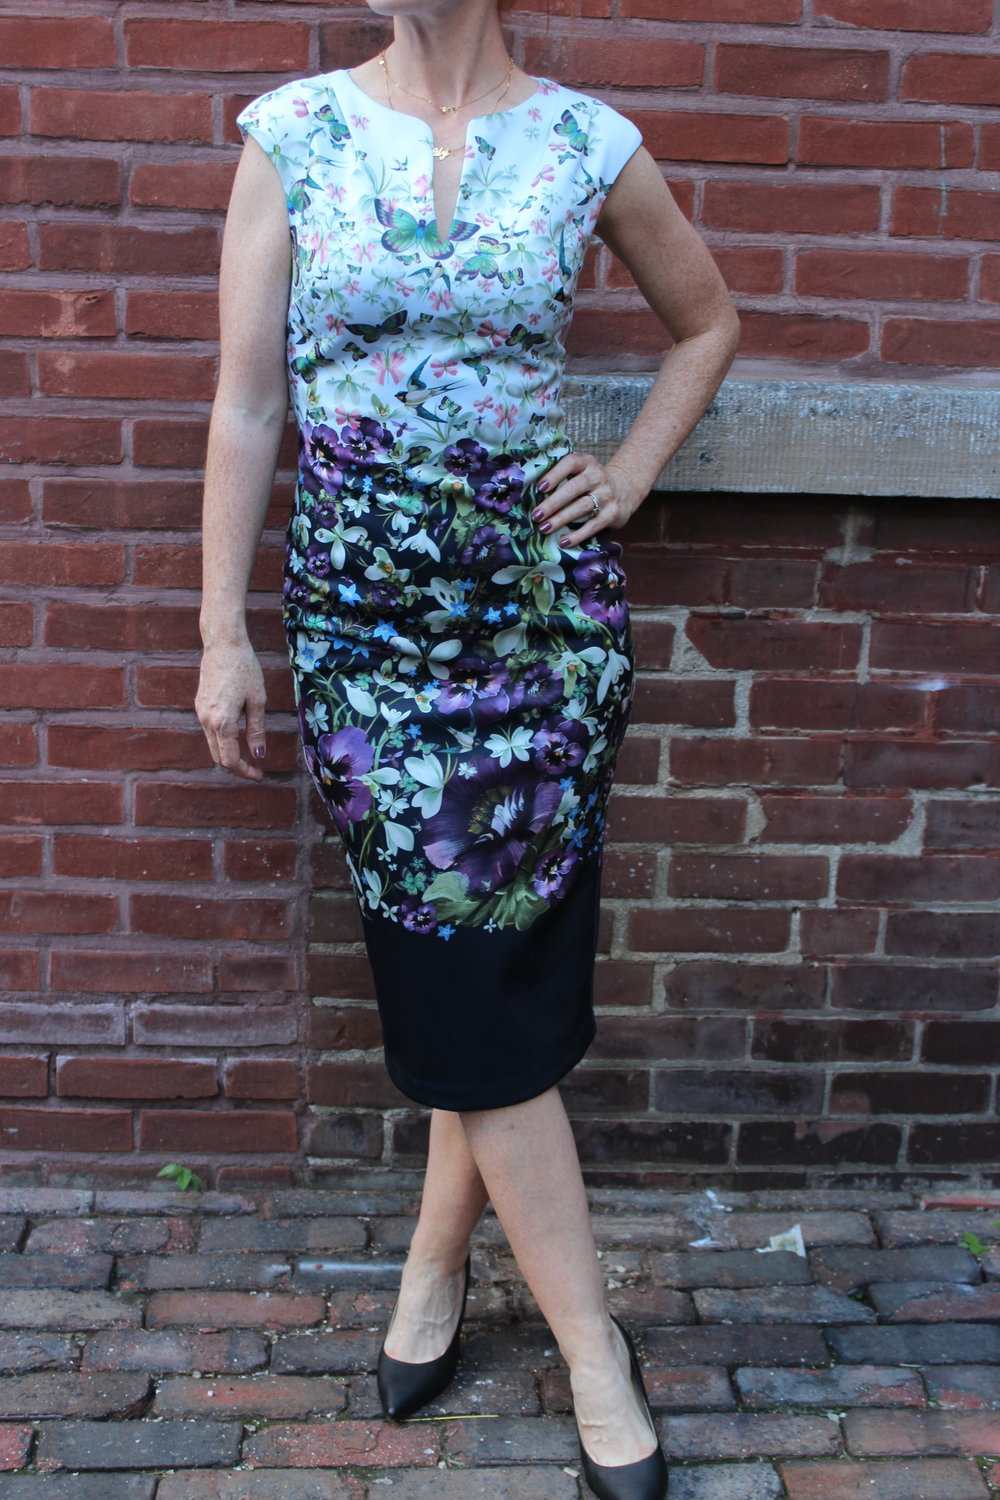 Parker silk dress was $468/ Now $328                               Ted Baker floral dress was $349/ Now $245